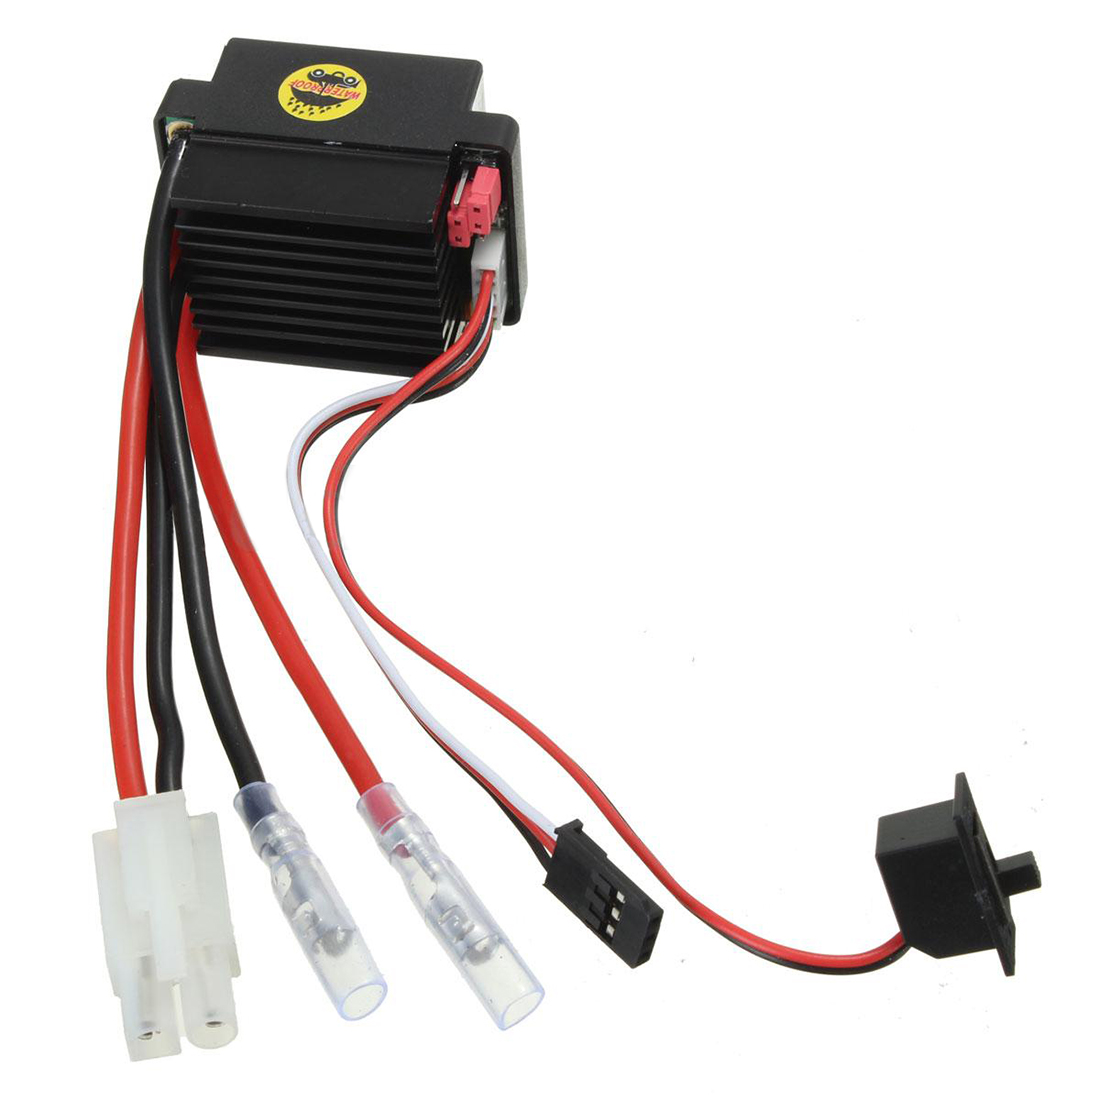 KSOL HSP 320A Brushed Brush Motor Speed Controller ESC F. 1/10 1/12 RC Truck Car Boat 10a brushed esc two way motor speed controller for 1 16 1 18 1 24 car boat tank f05427 28